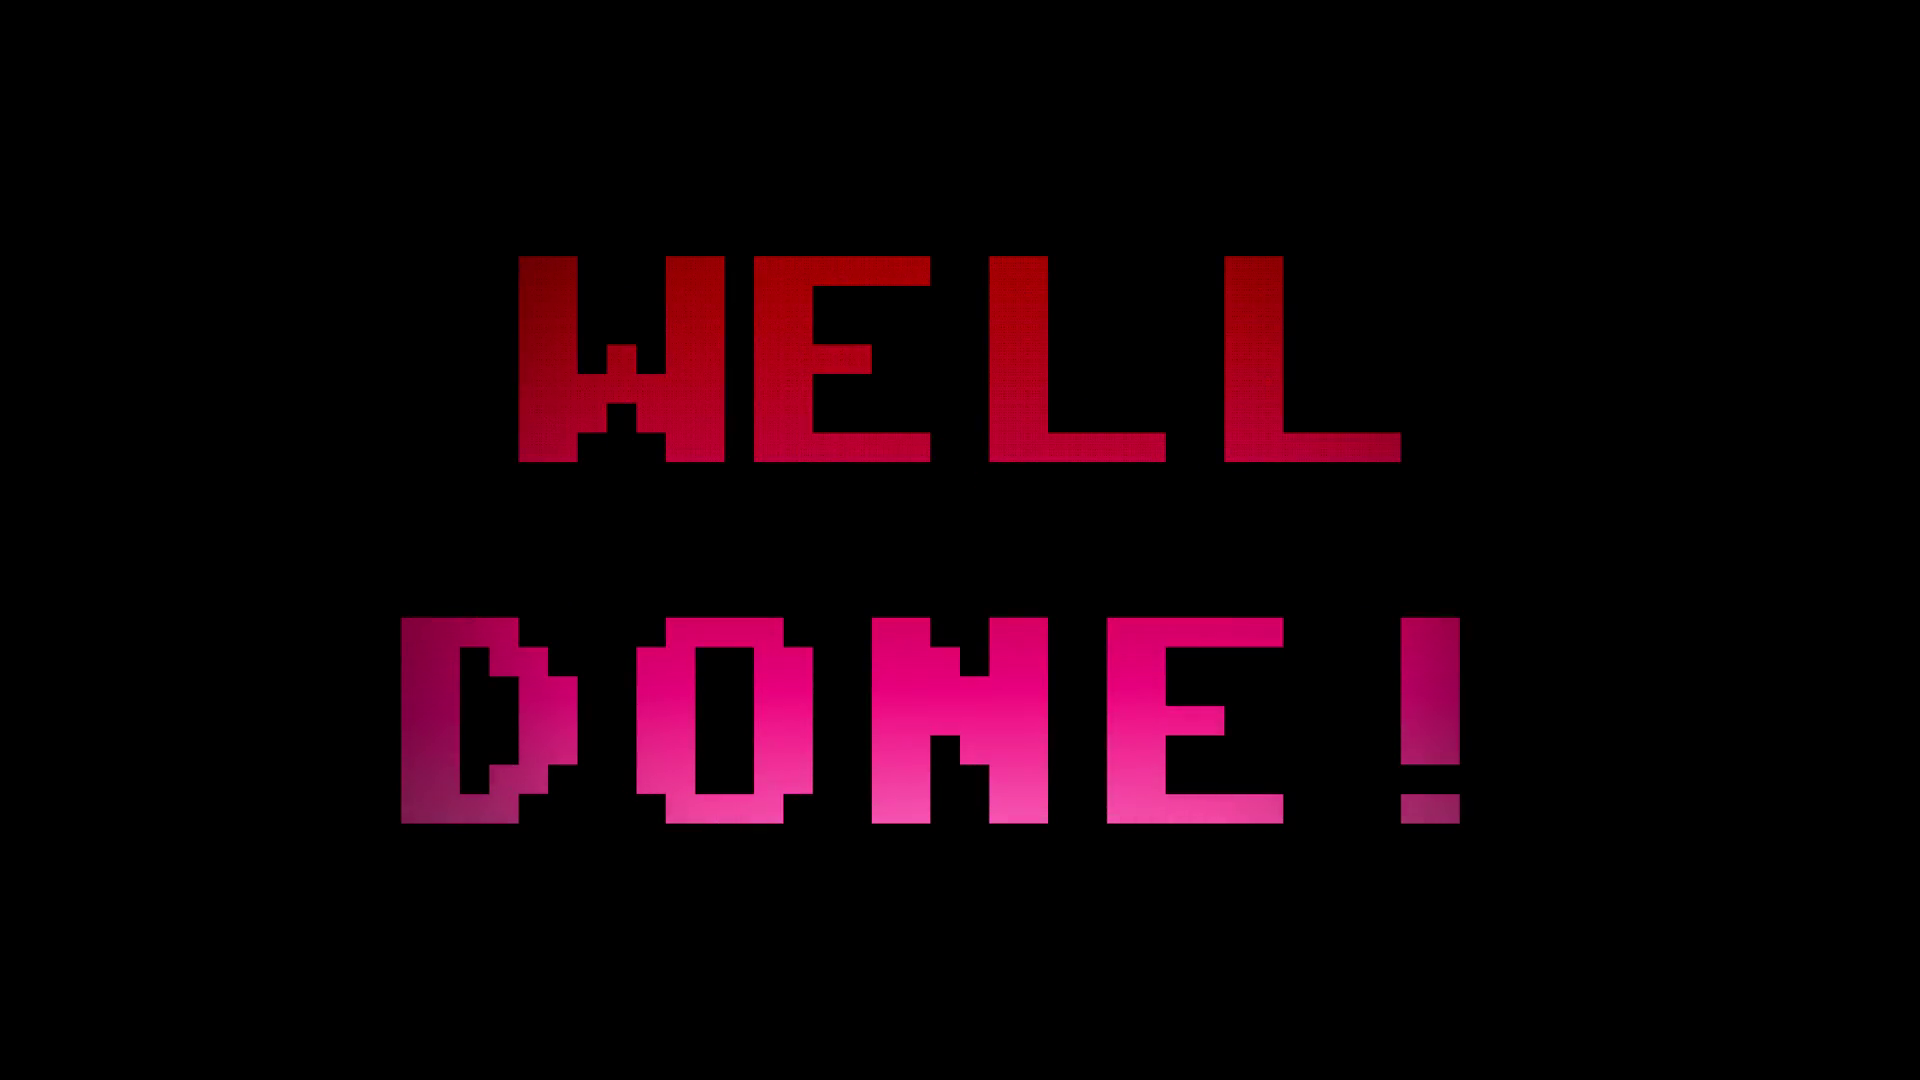 Videogame Well Done 4k. A videogame screen with the text Well done. 8 bit  retro style, 4k. Stock Video Footage - VideoBlocks - Well Done PNG HD